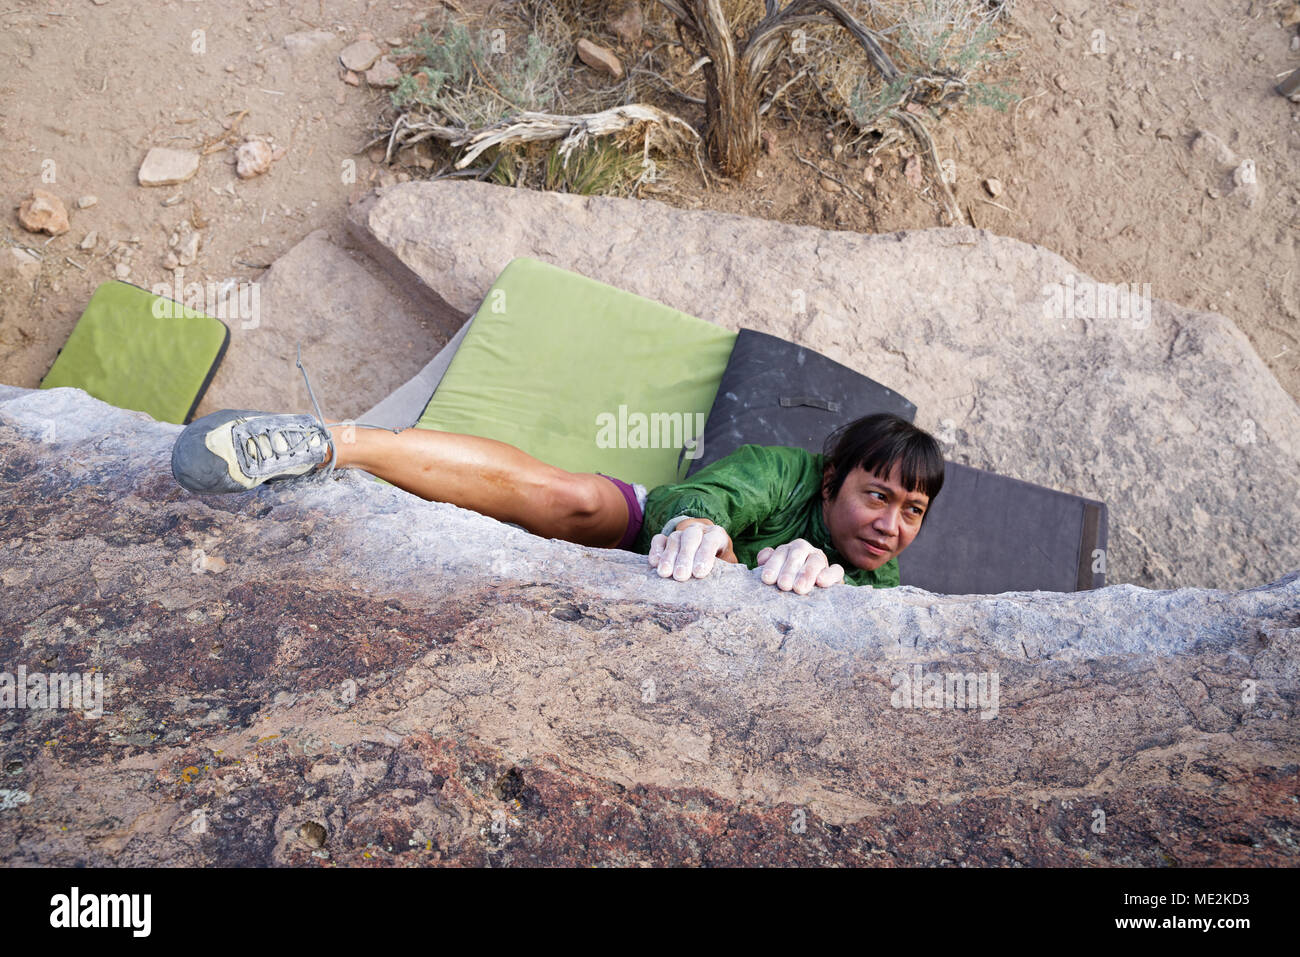 a woman bouldering on a traverse from above with a heel hook - Stock Image